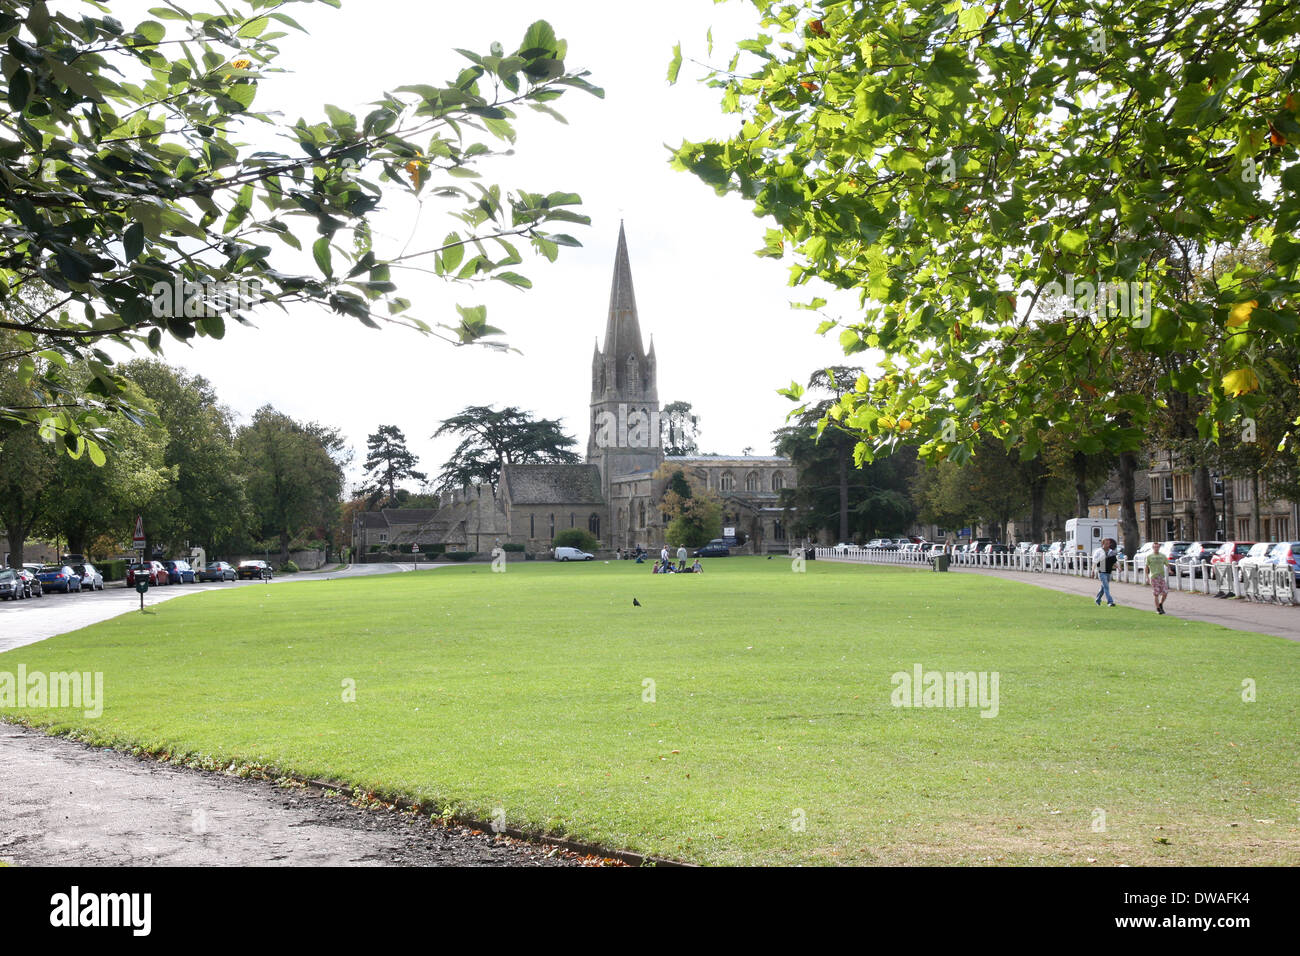 Church green and St Mary's Church Witney Oxfordshire UK - Stock Image